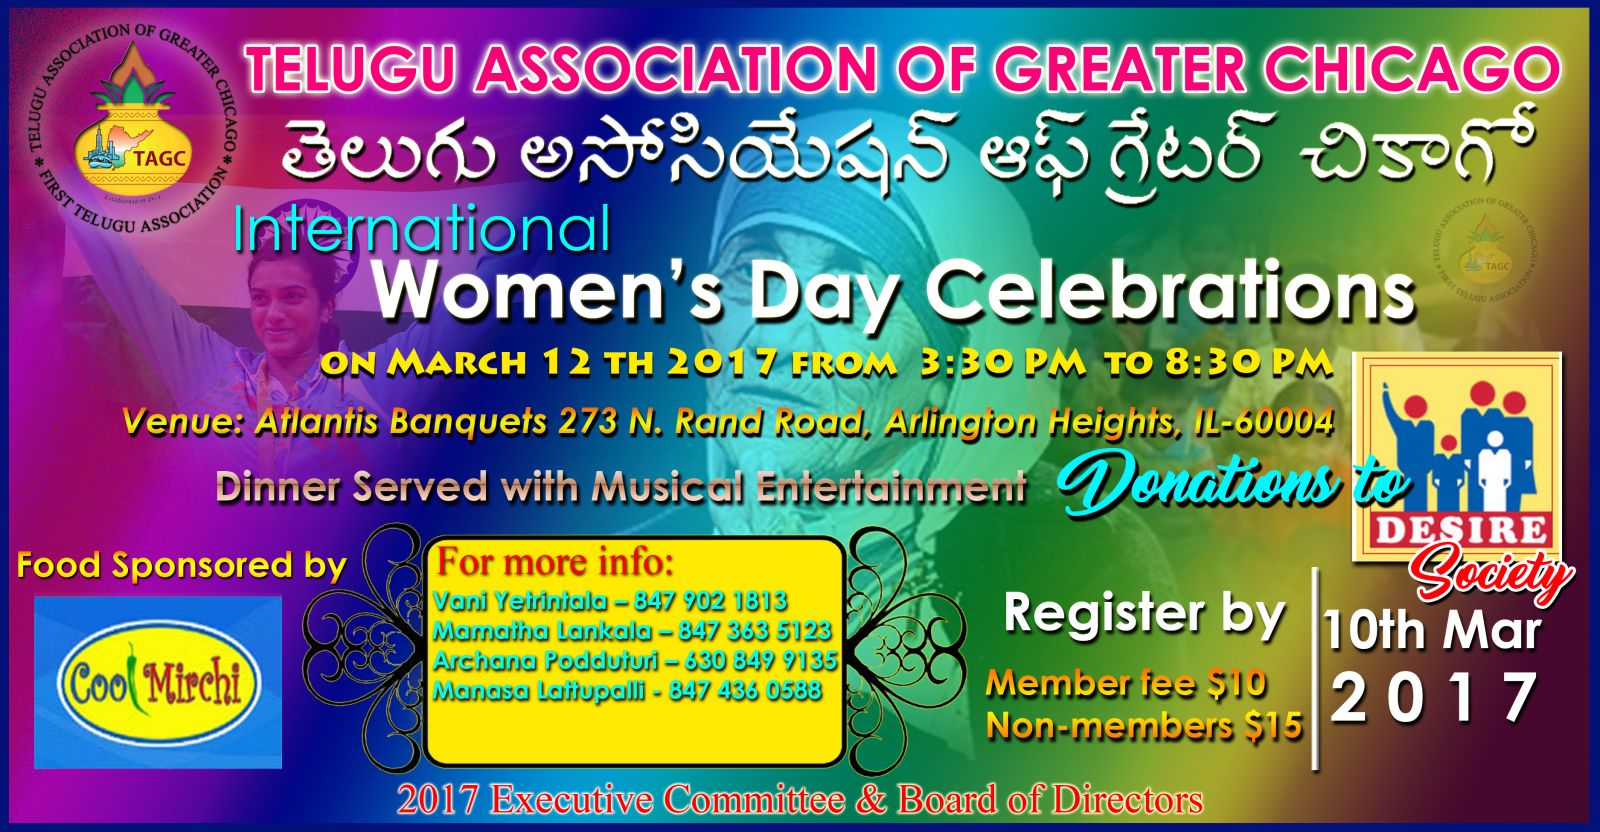 2017 TAGC Women's Day Celebrations